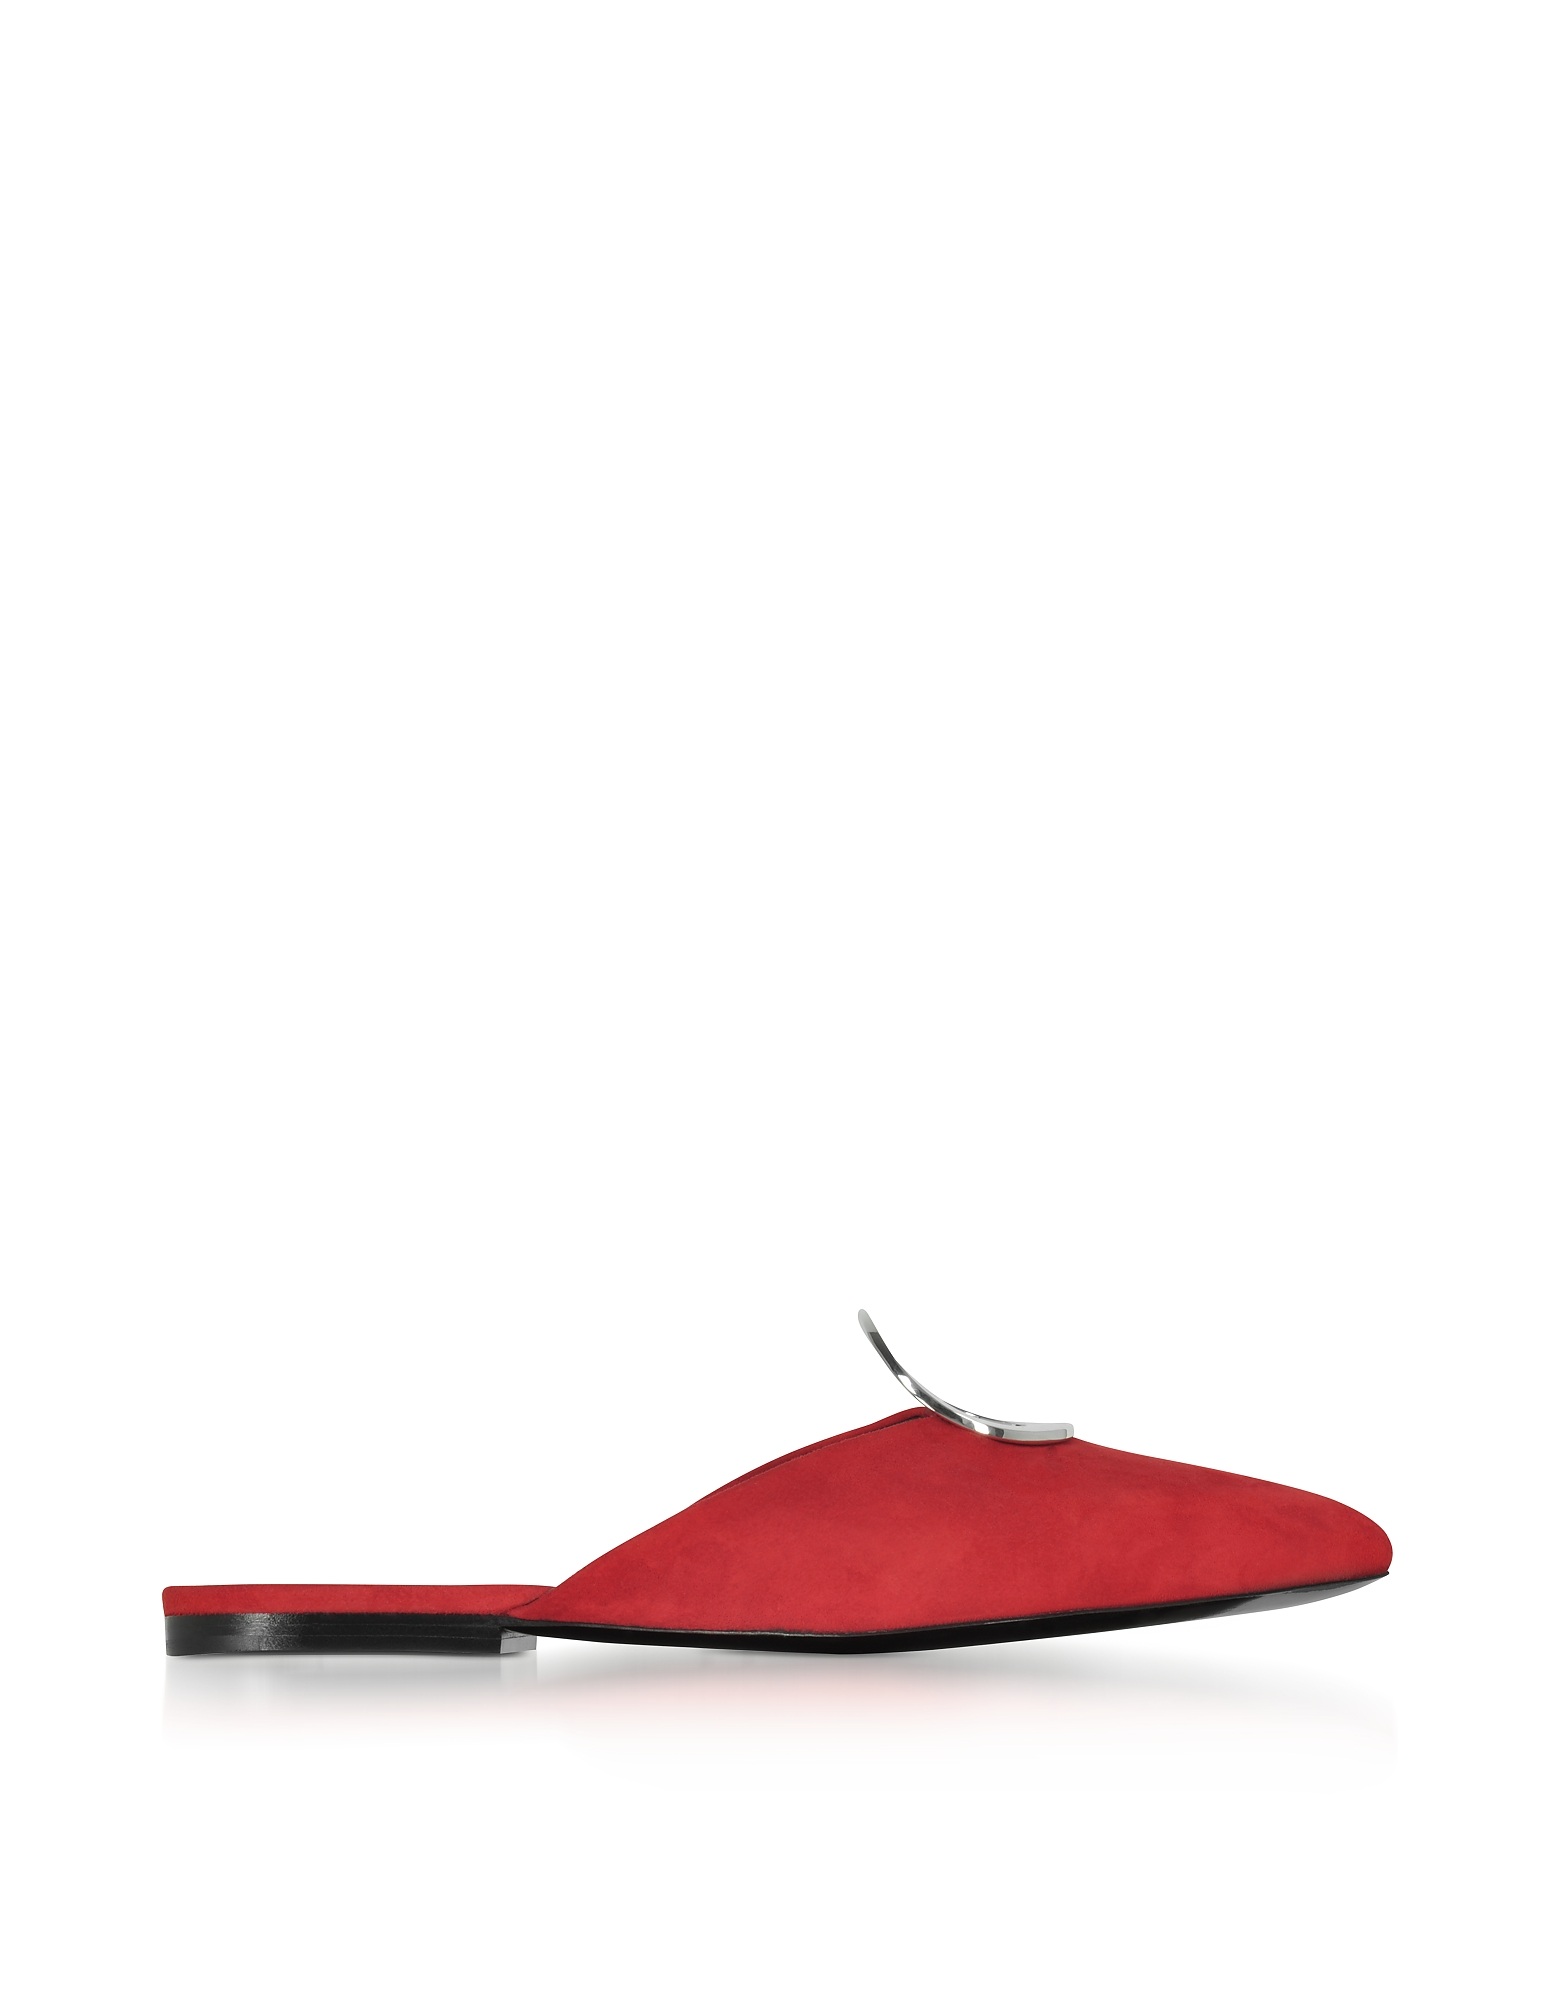 Proenza Schouler Shoes, Flame Red Suede Flat Mule w/Metal Eyelet